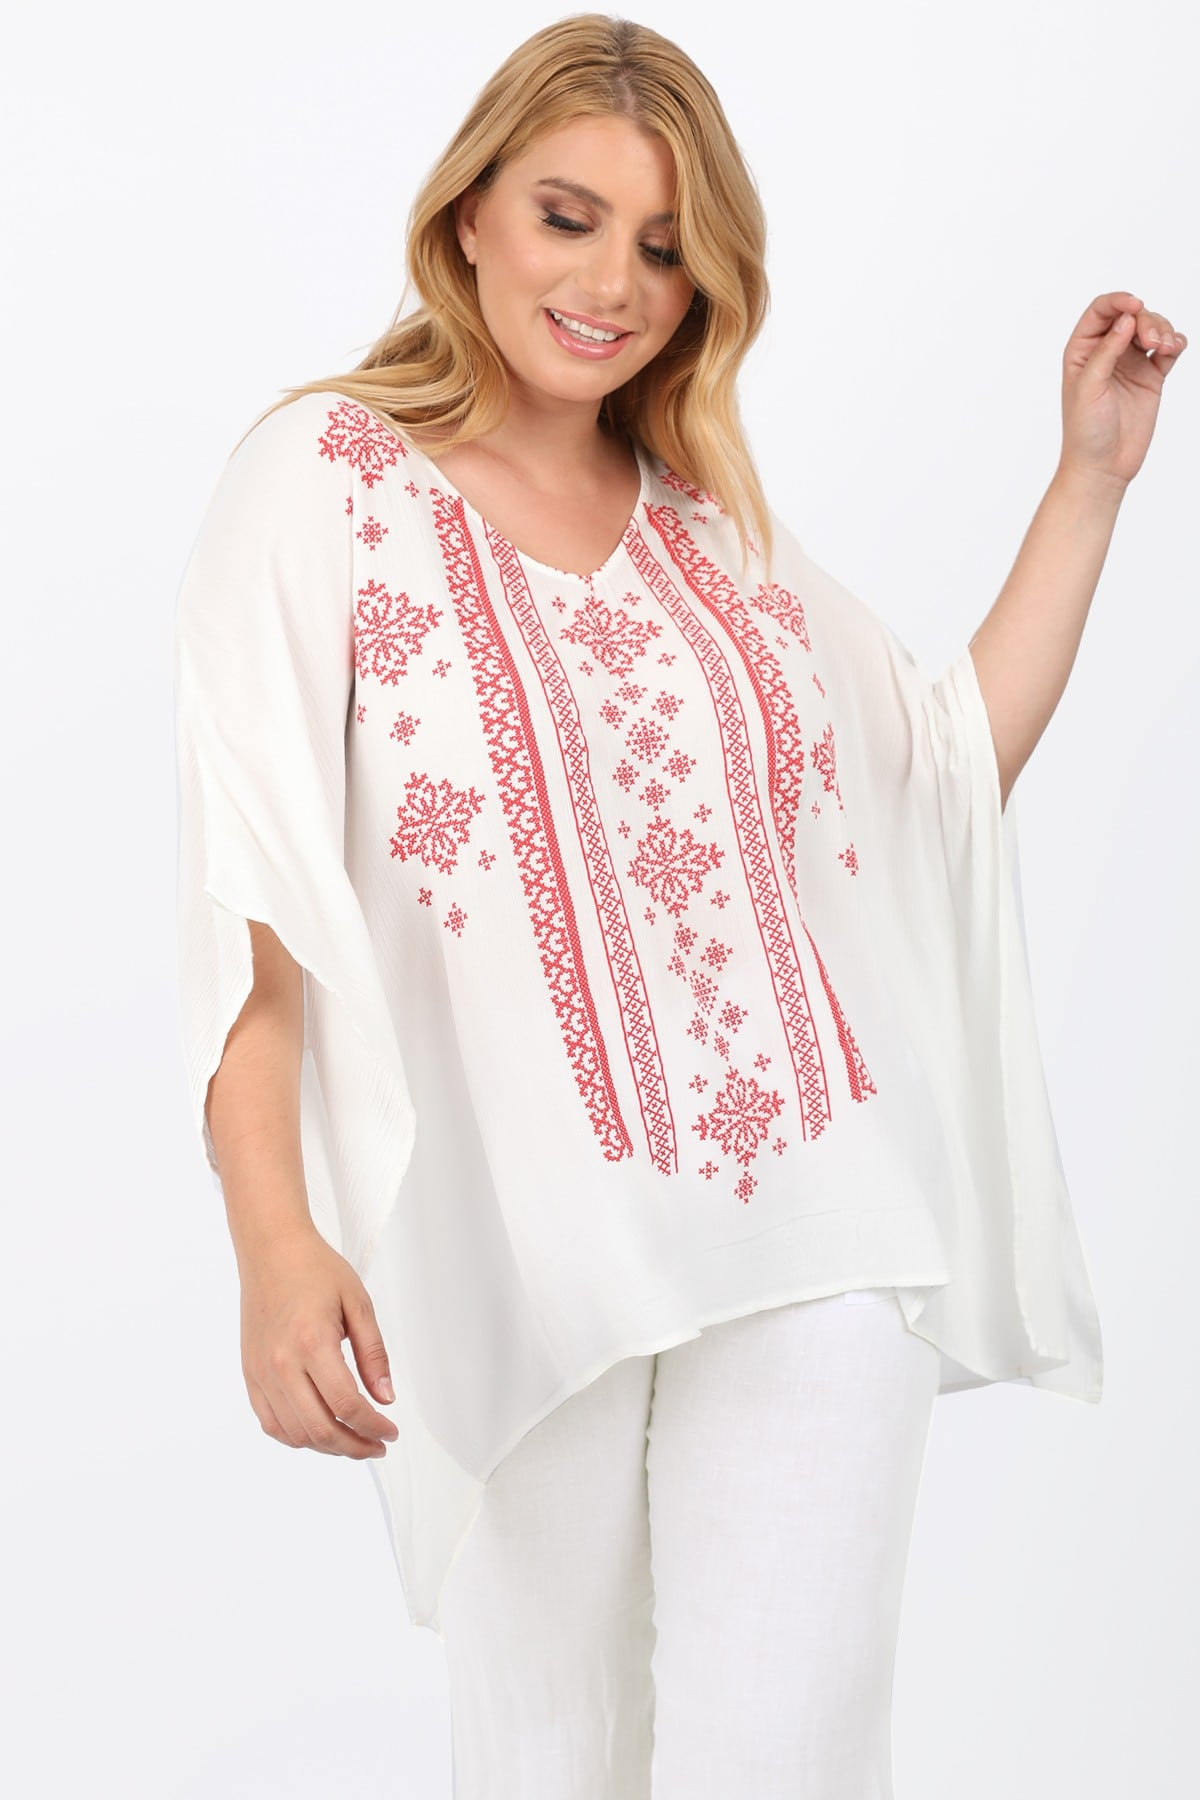 Tunic from